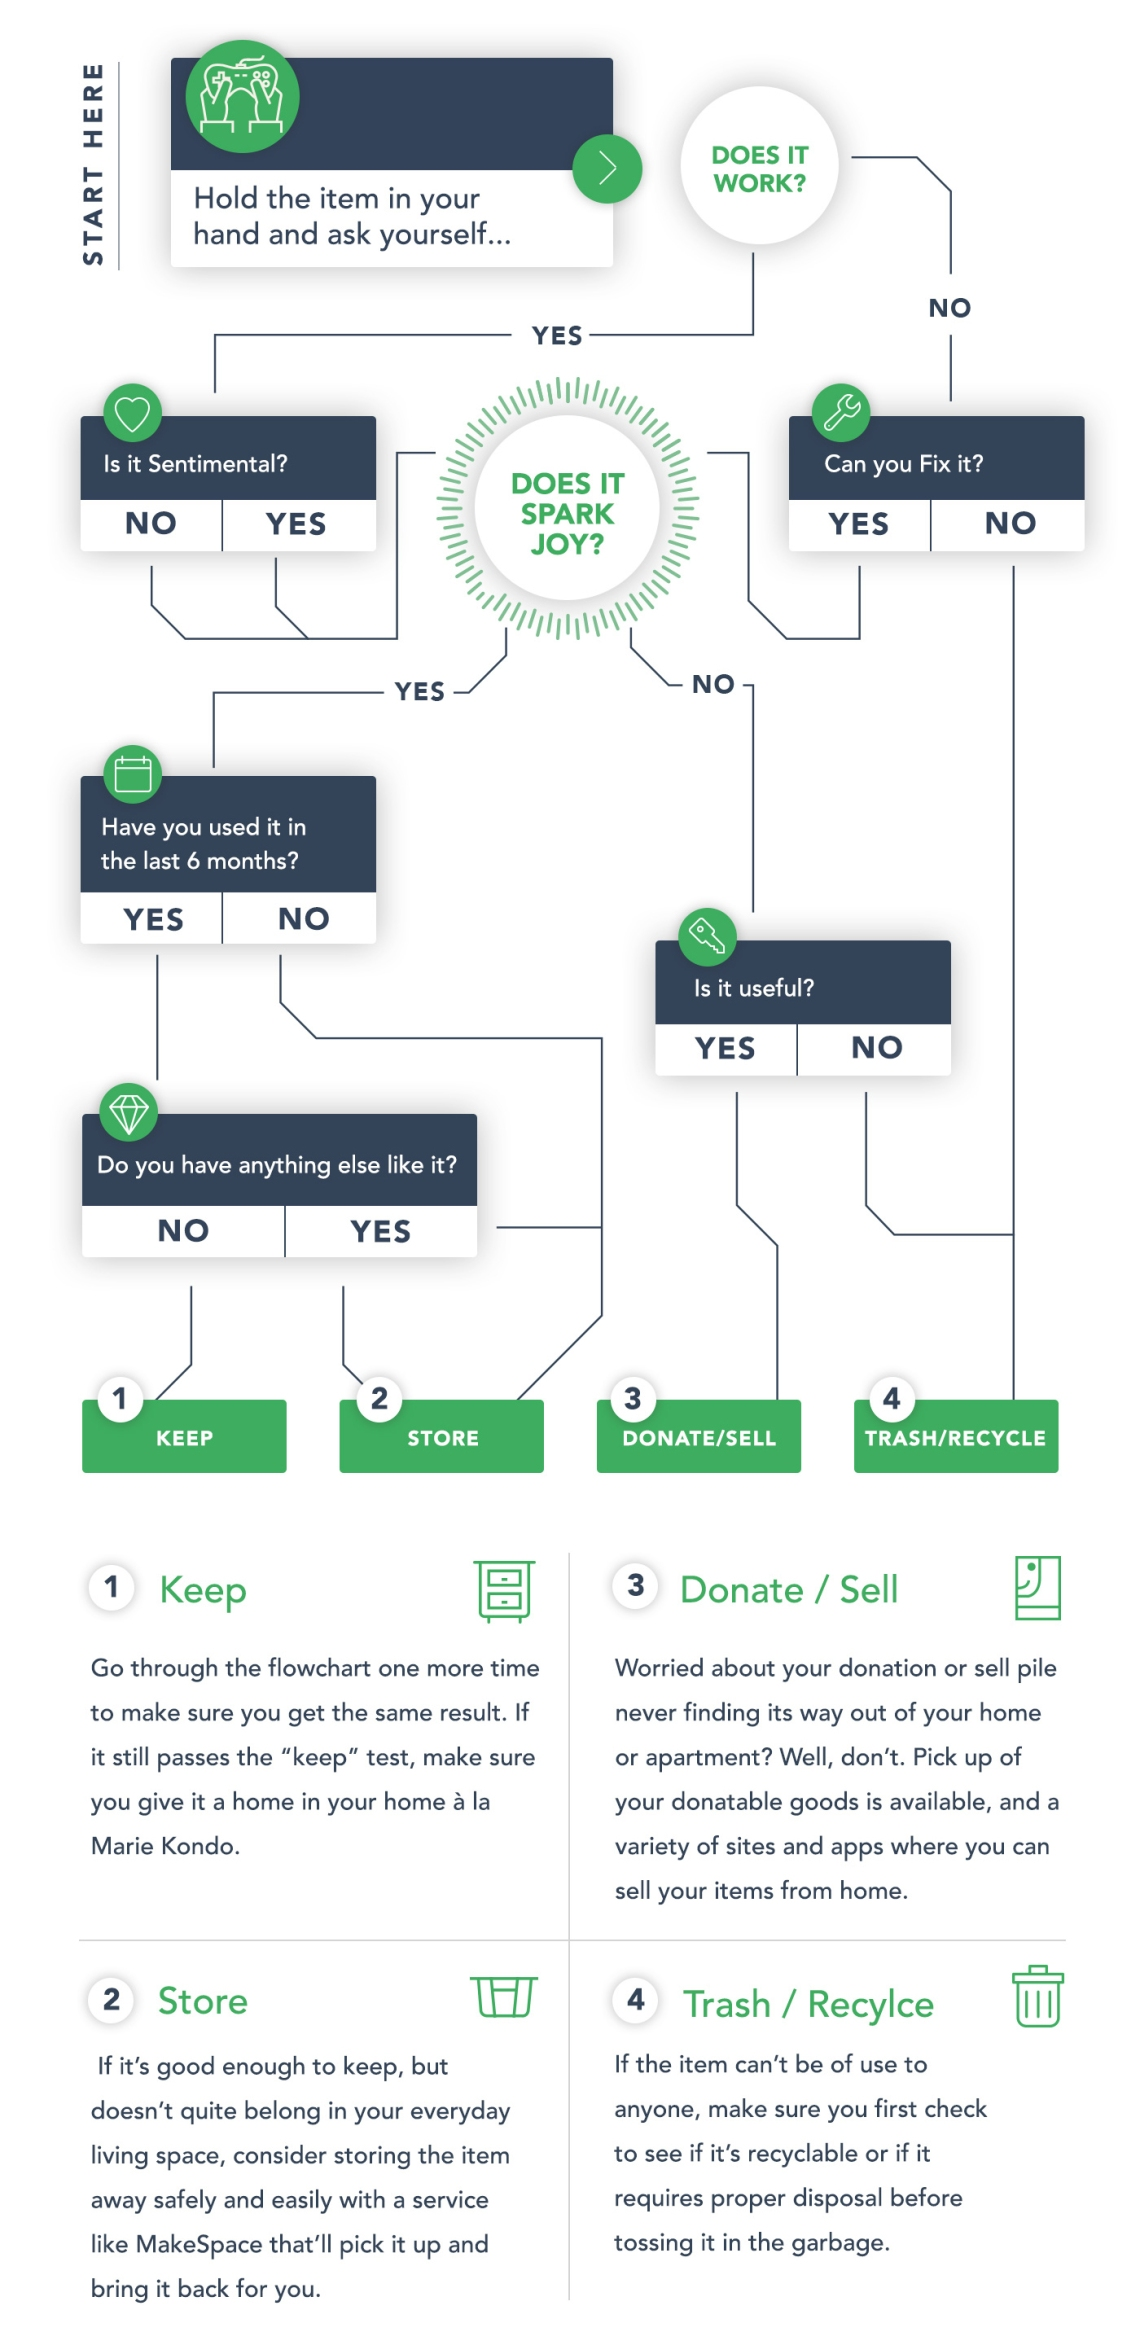 decluttering-flowchart-makespace-storage.jpg